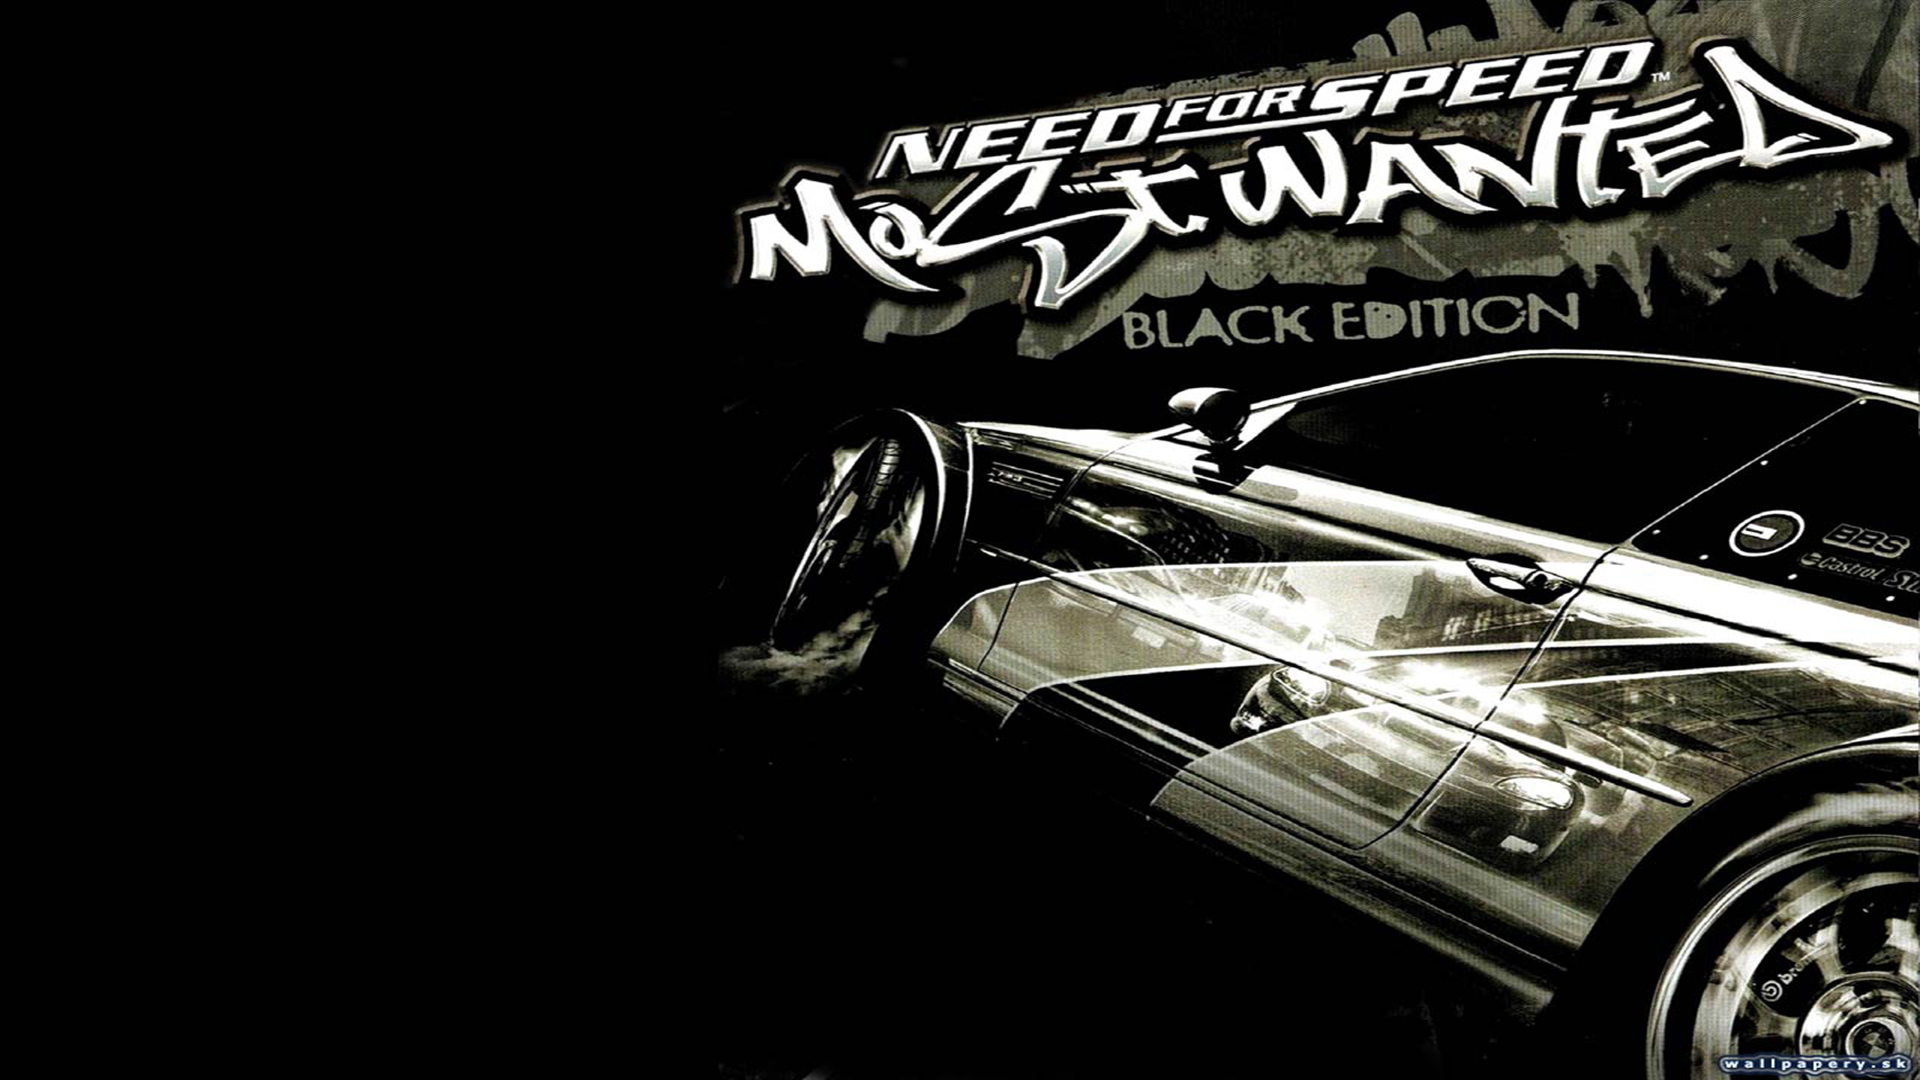 How to download nfs most wanted black edition for pc